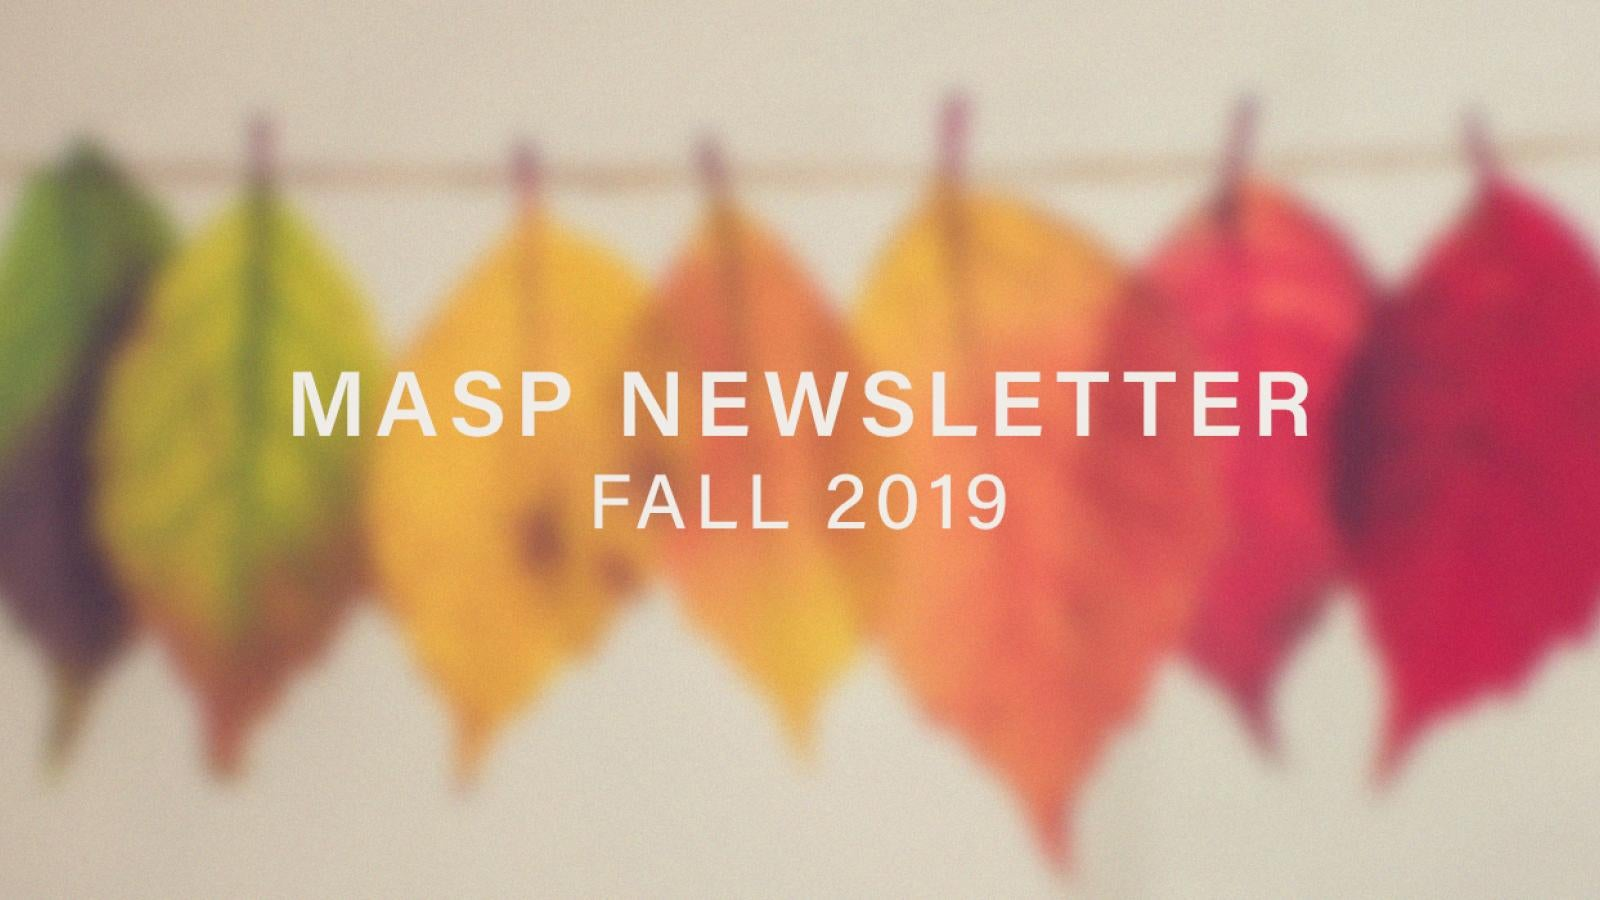 MASP Fall 2019 Newsletter